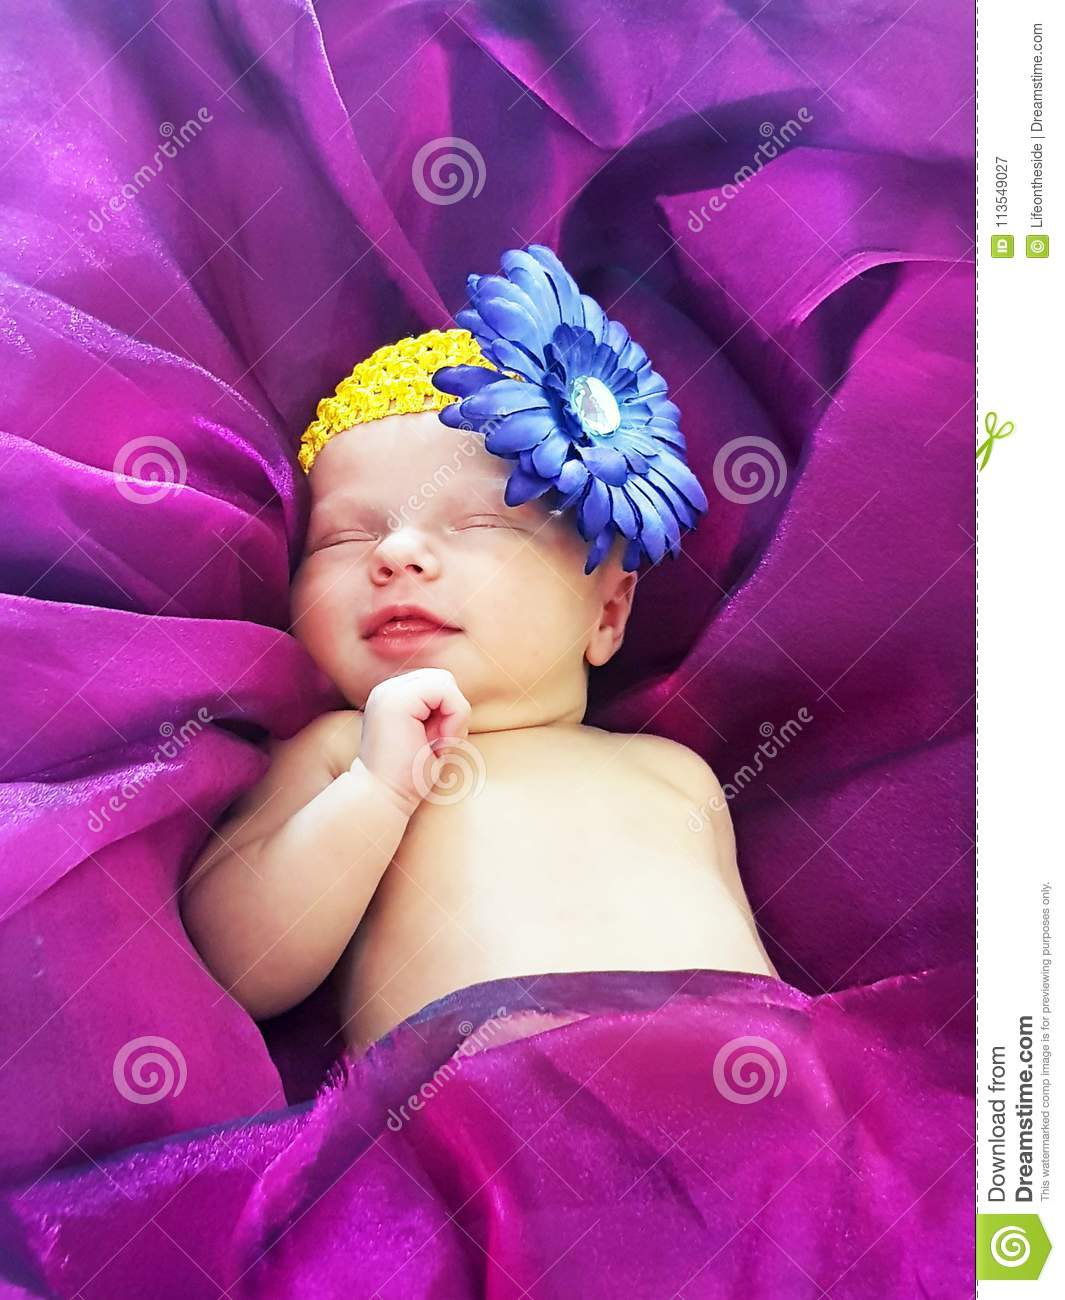 Newborn baby girl smiling sleeping on bed ultra violet purple